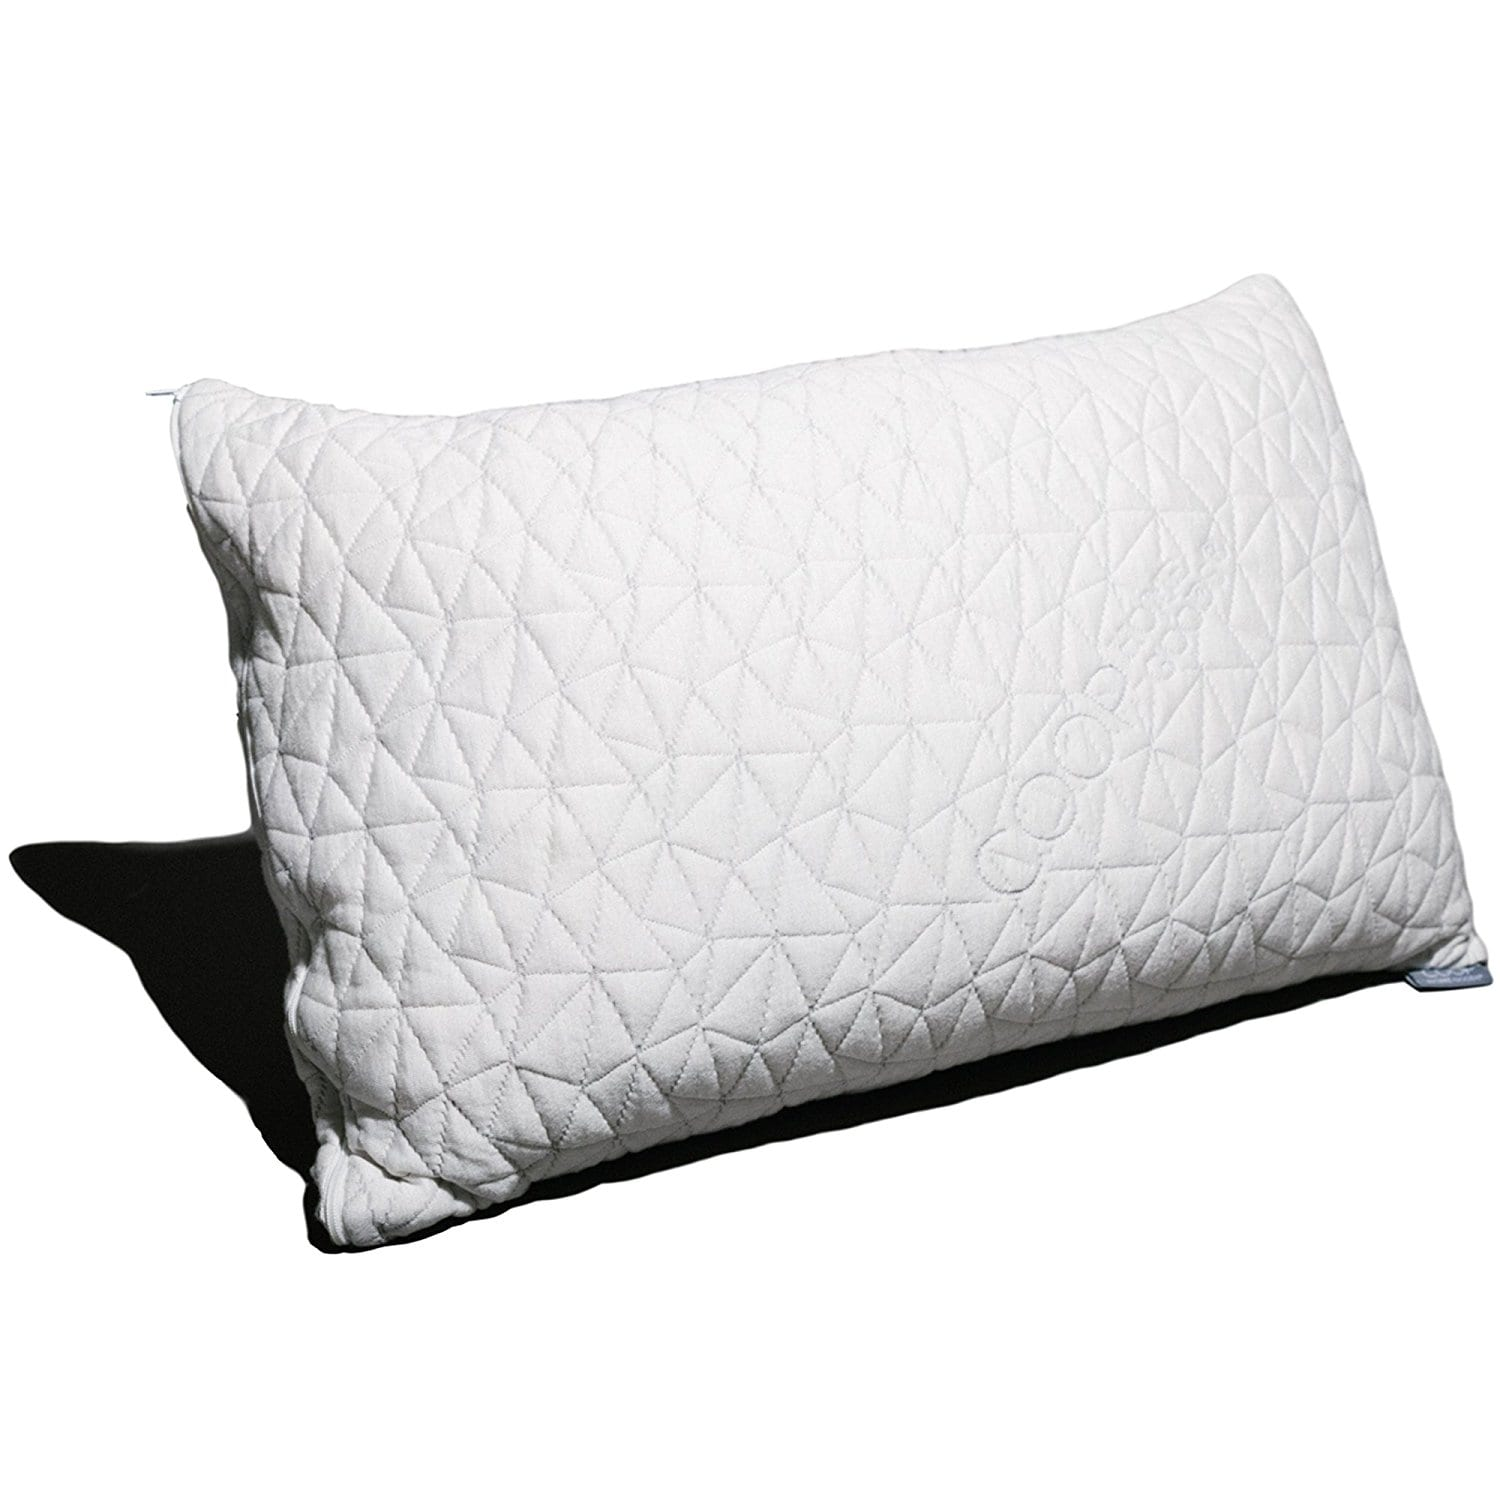 Coop Home Goods CPAP Pillow Review by www.snoremagazine.com